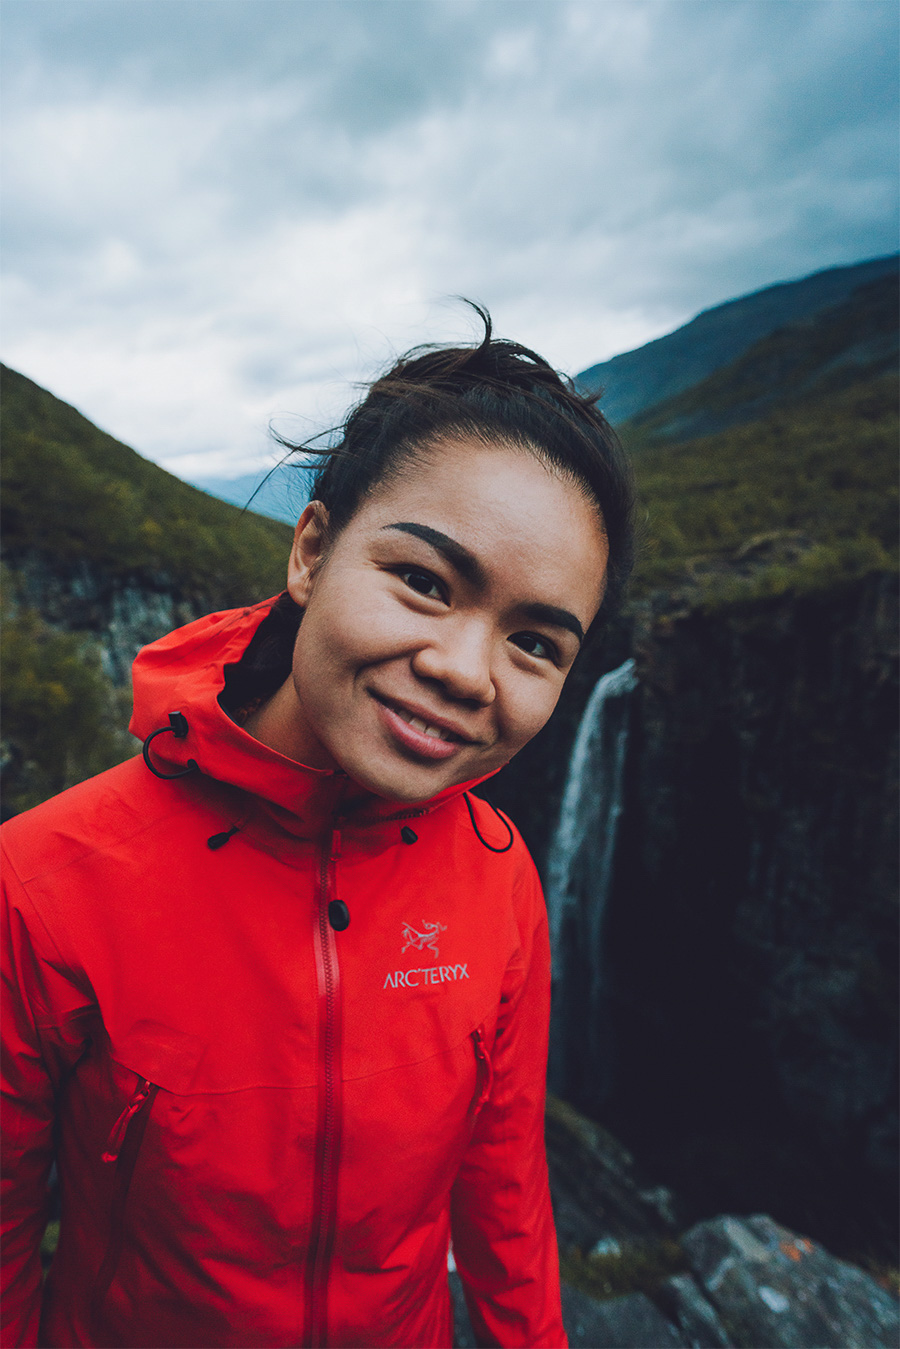 Smiling girl in an orange jacket with Gorsabrua located in Kåfjord in the background